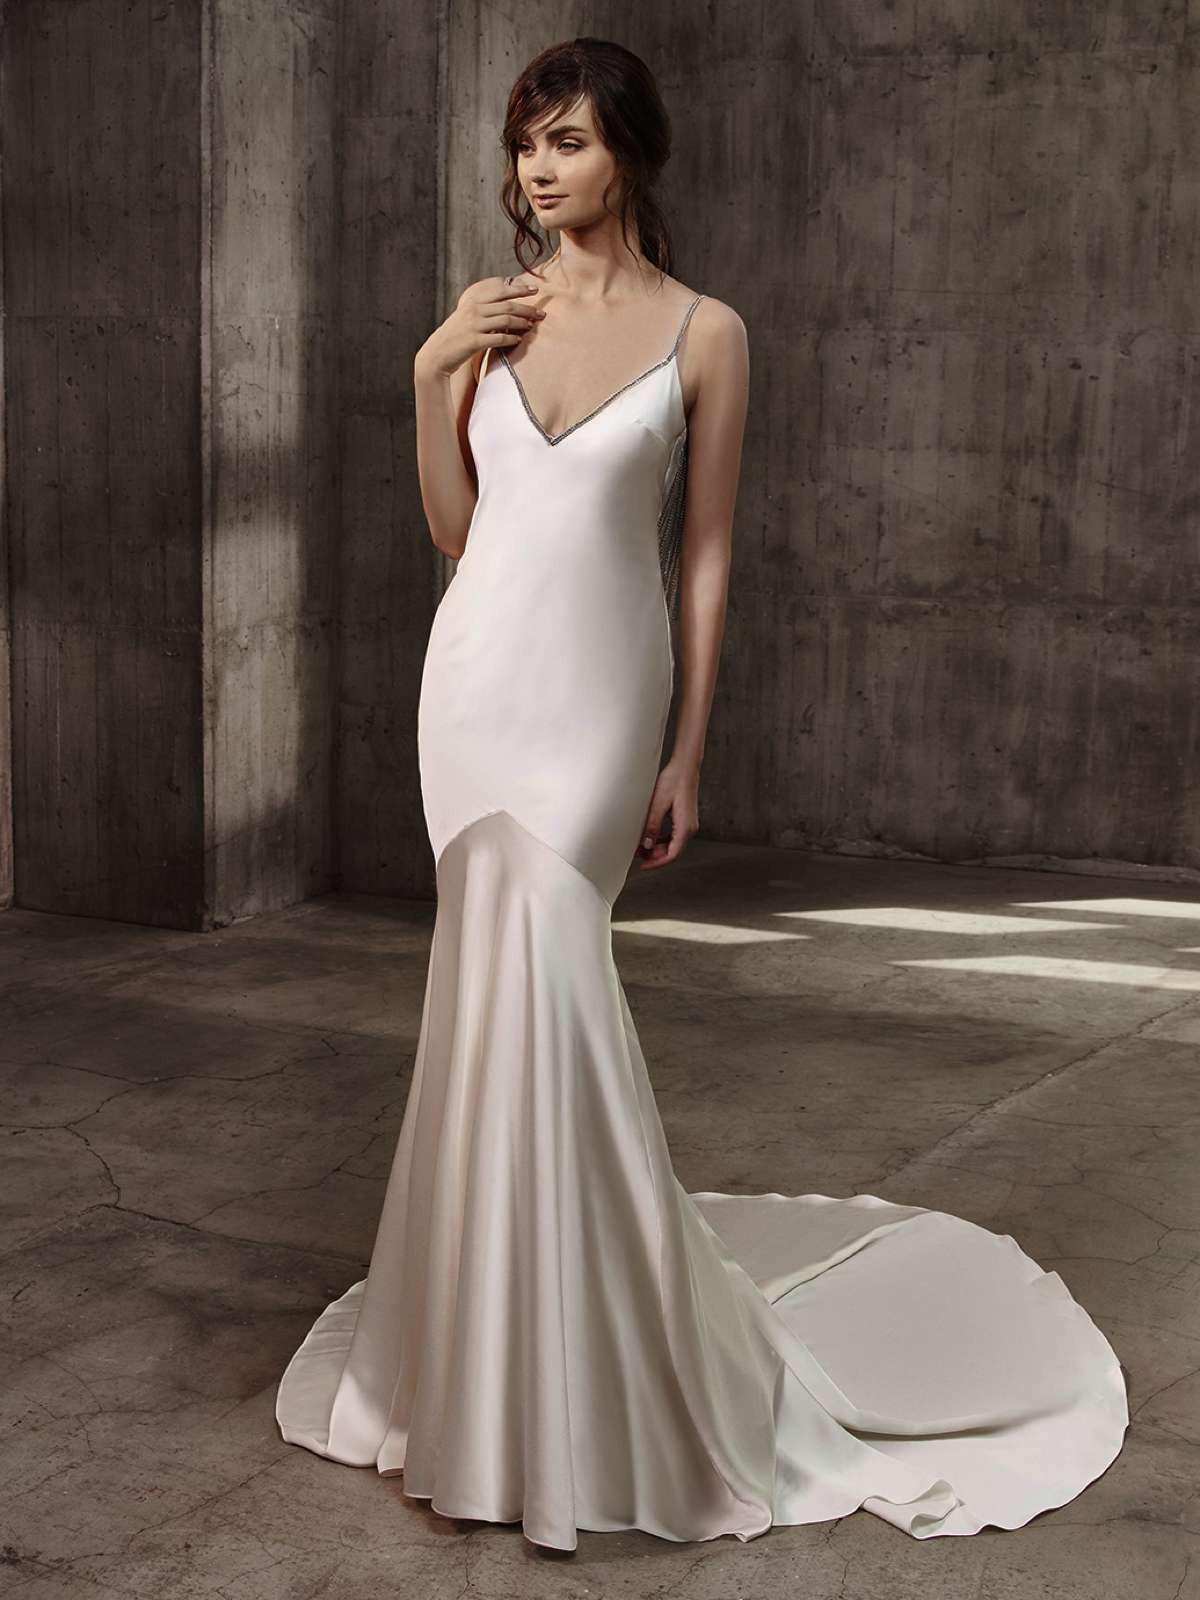 The luxurious new collections from Badgley Mischka - Love Our Wedding